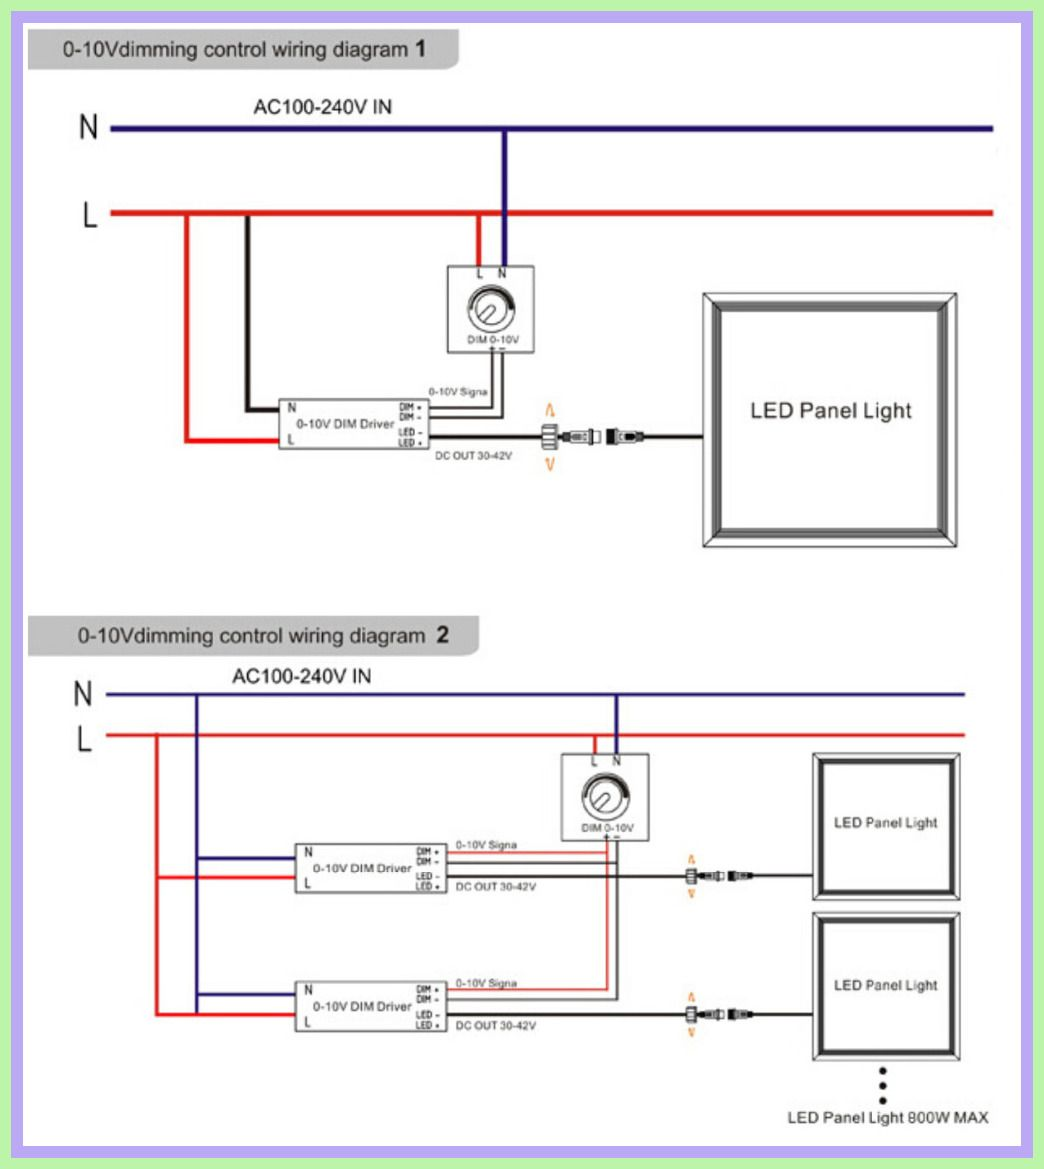 97 reference of led light panel wiring diagram in 2020 | led panel light,  led lights, light panel  pinterest